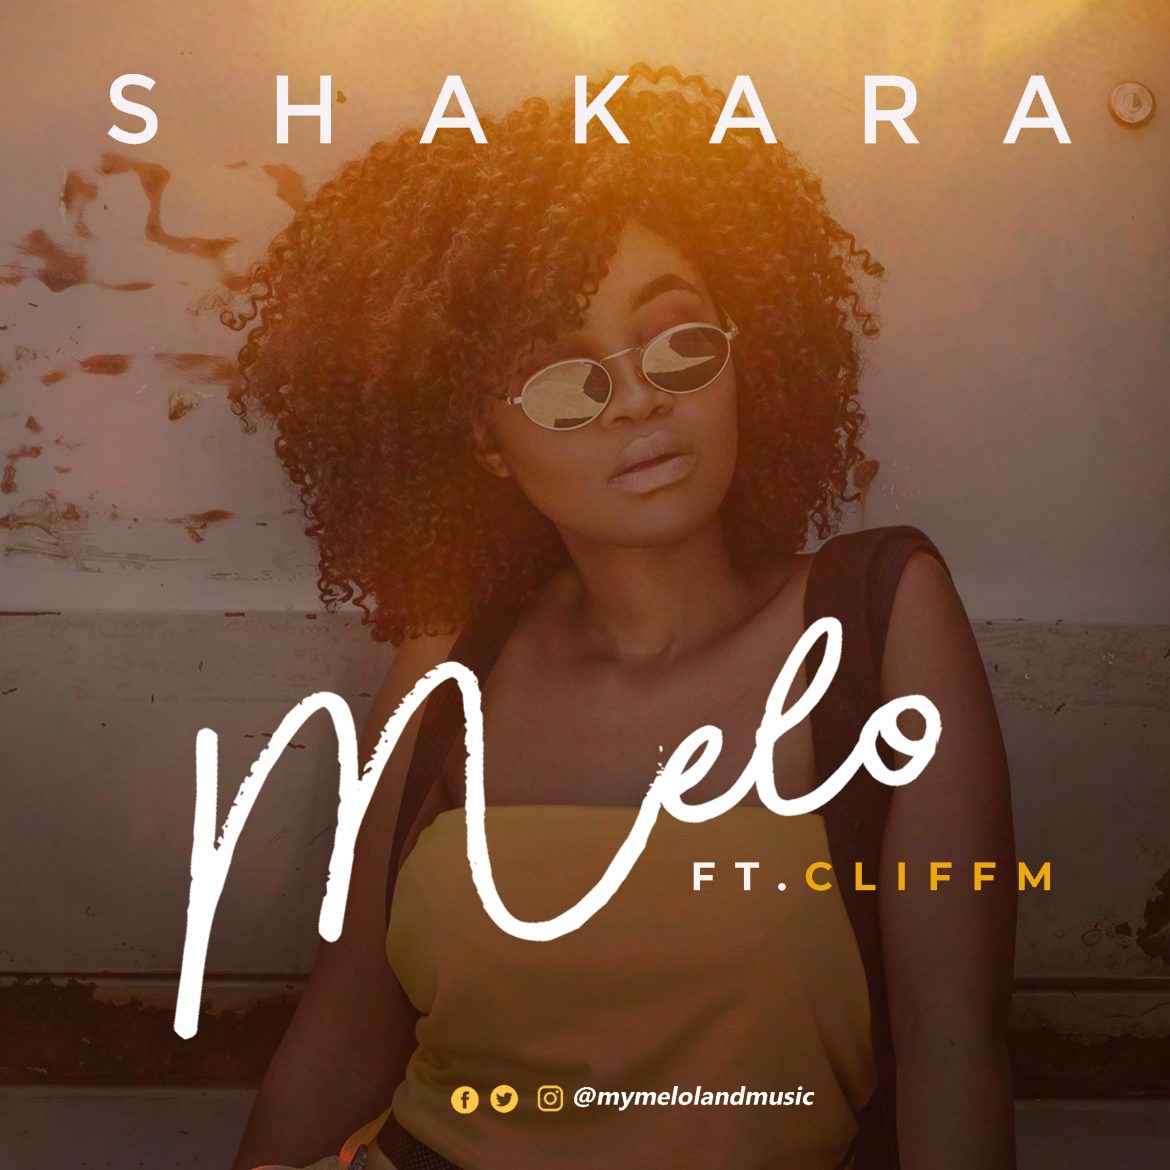 https://soundcloud.com/tickybox-media-publicity/melo-shakara-ft-cliff-m